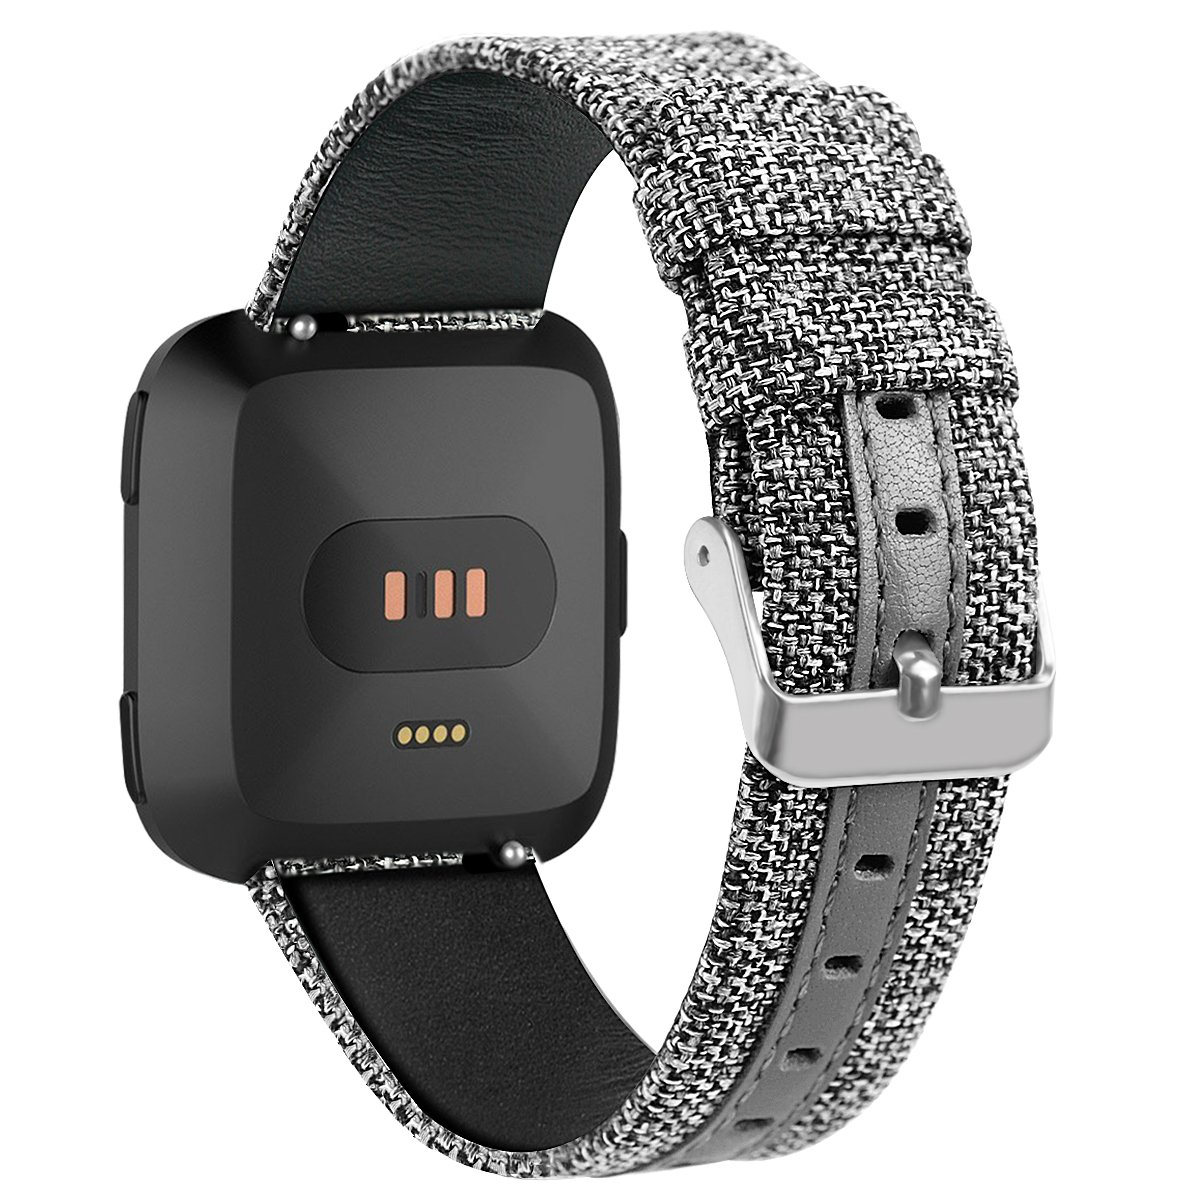 for Fitbit Versa Smartwatch Watch Band Genuine Leather Replacement Straps Canvas Leisure Wristband Grey